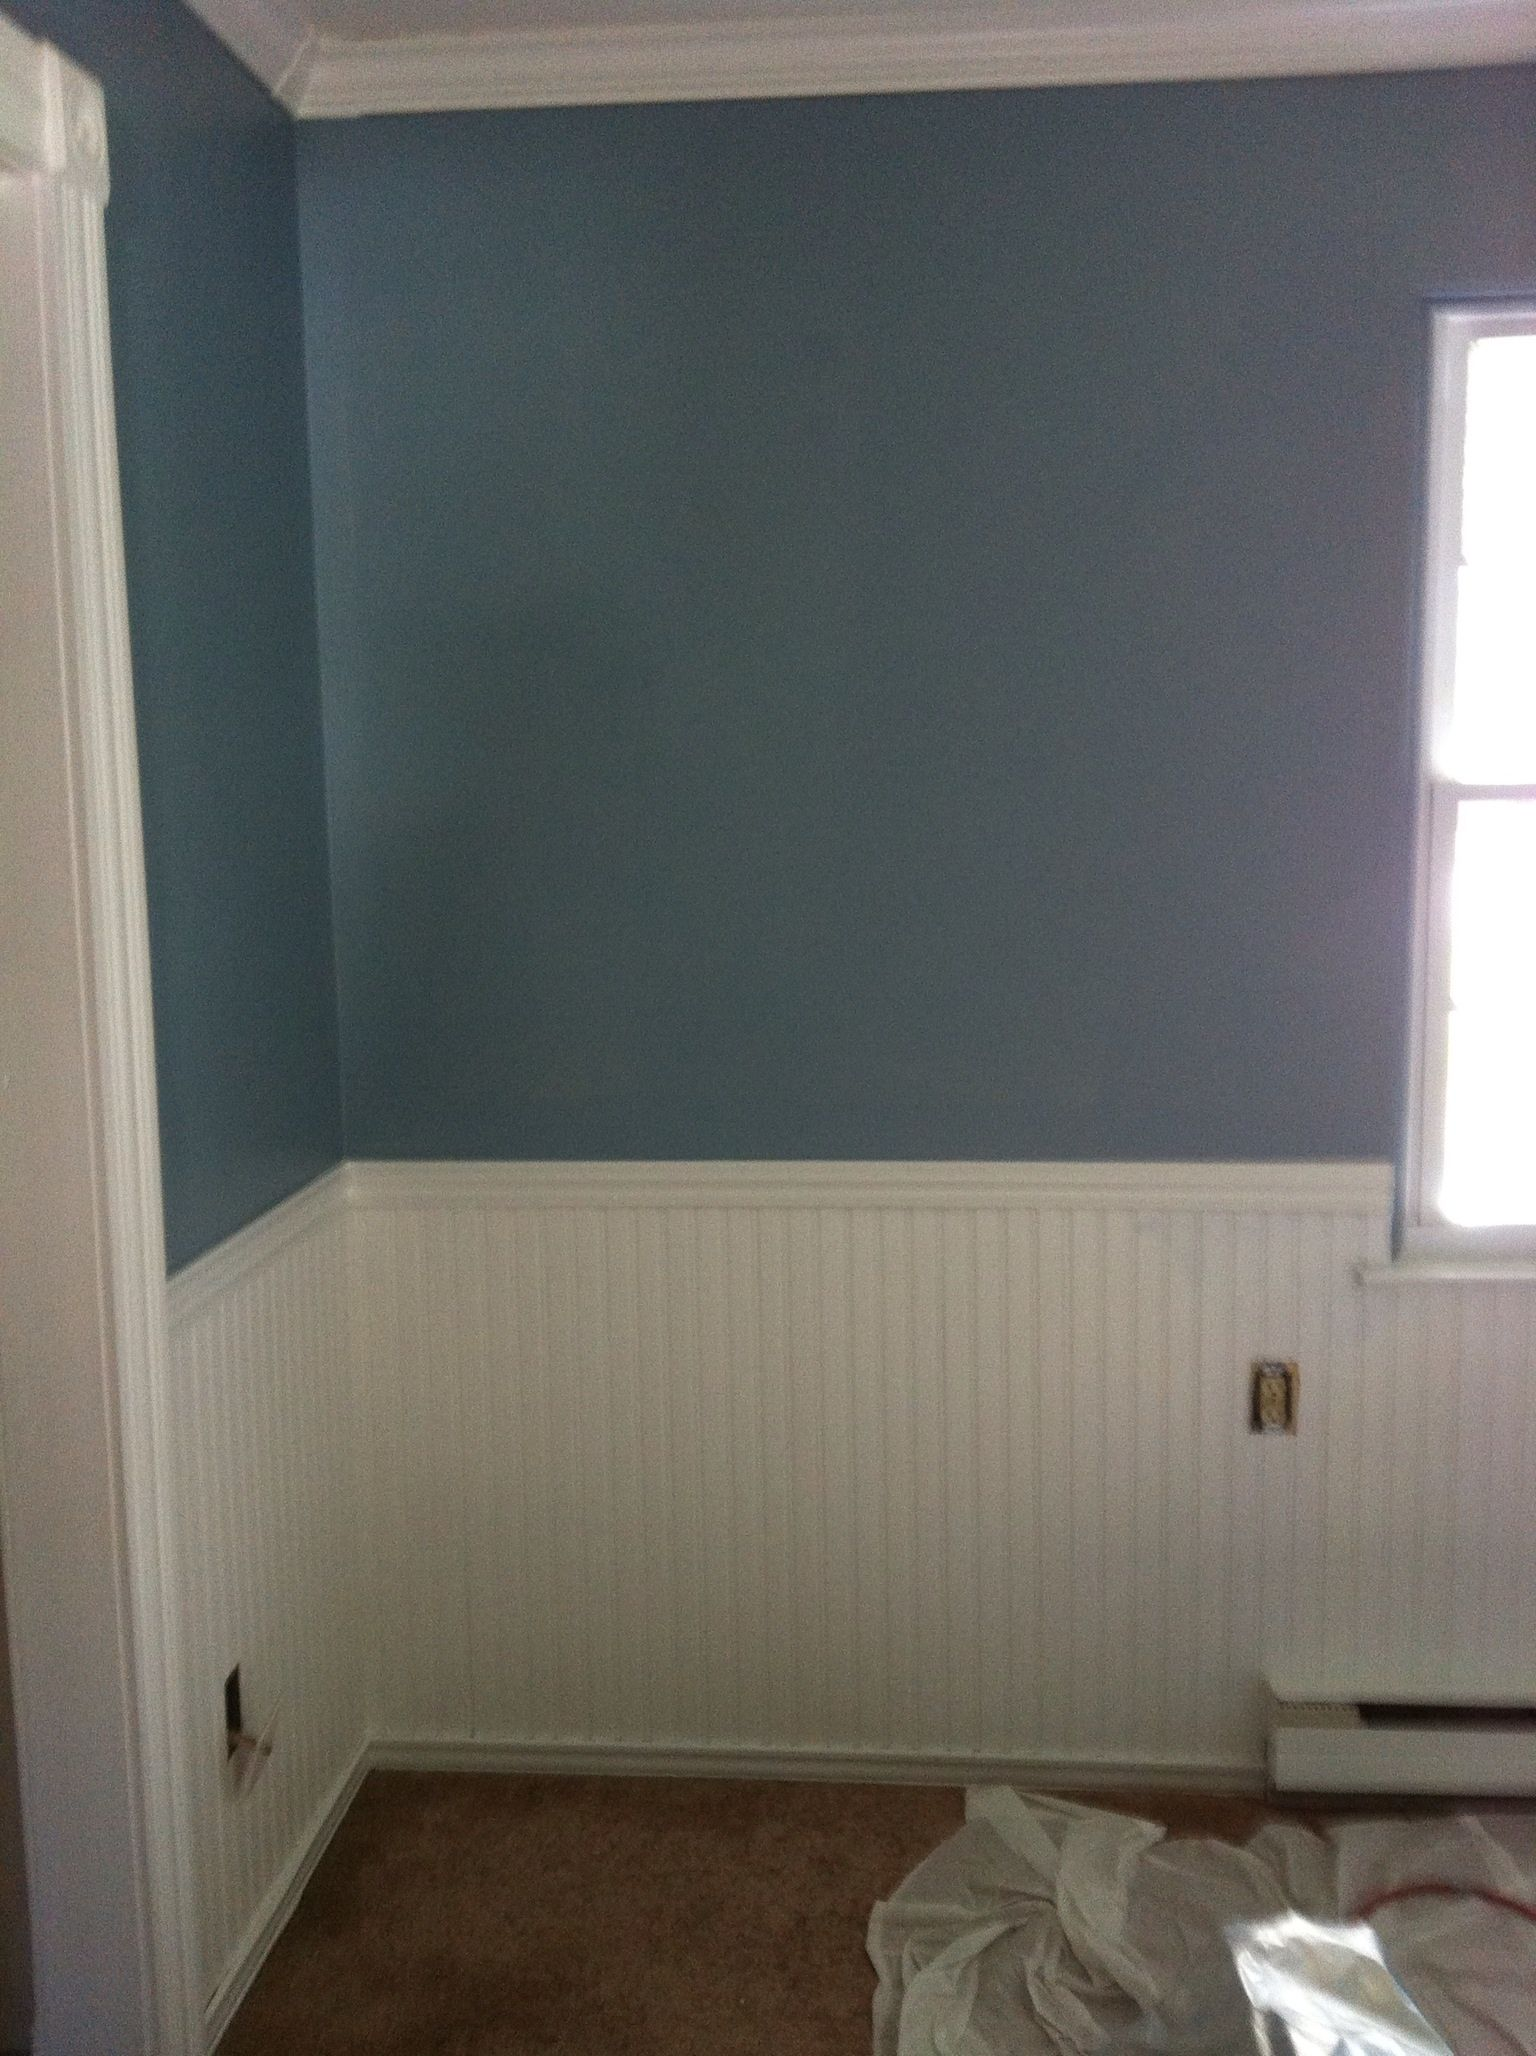 Wainscoting bedroom blue - Master Bedroom After With Sherwin Williams Meditative Blue Eggshell With White Eggshell On Wainscoting